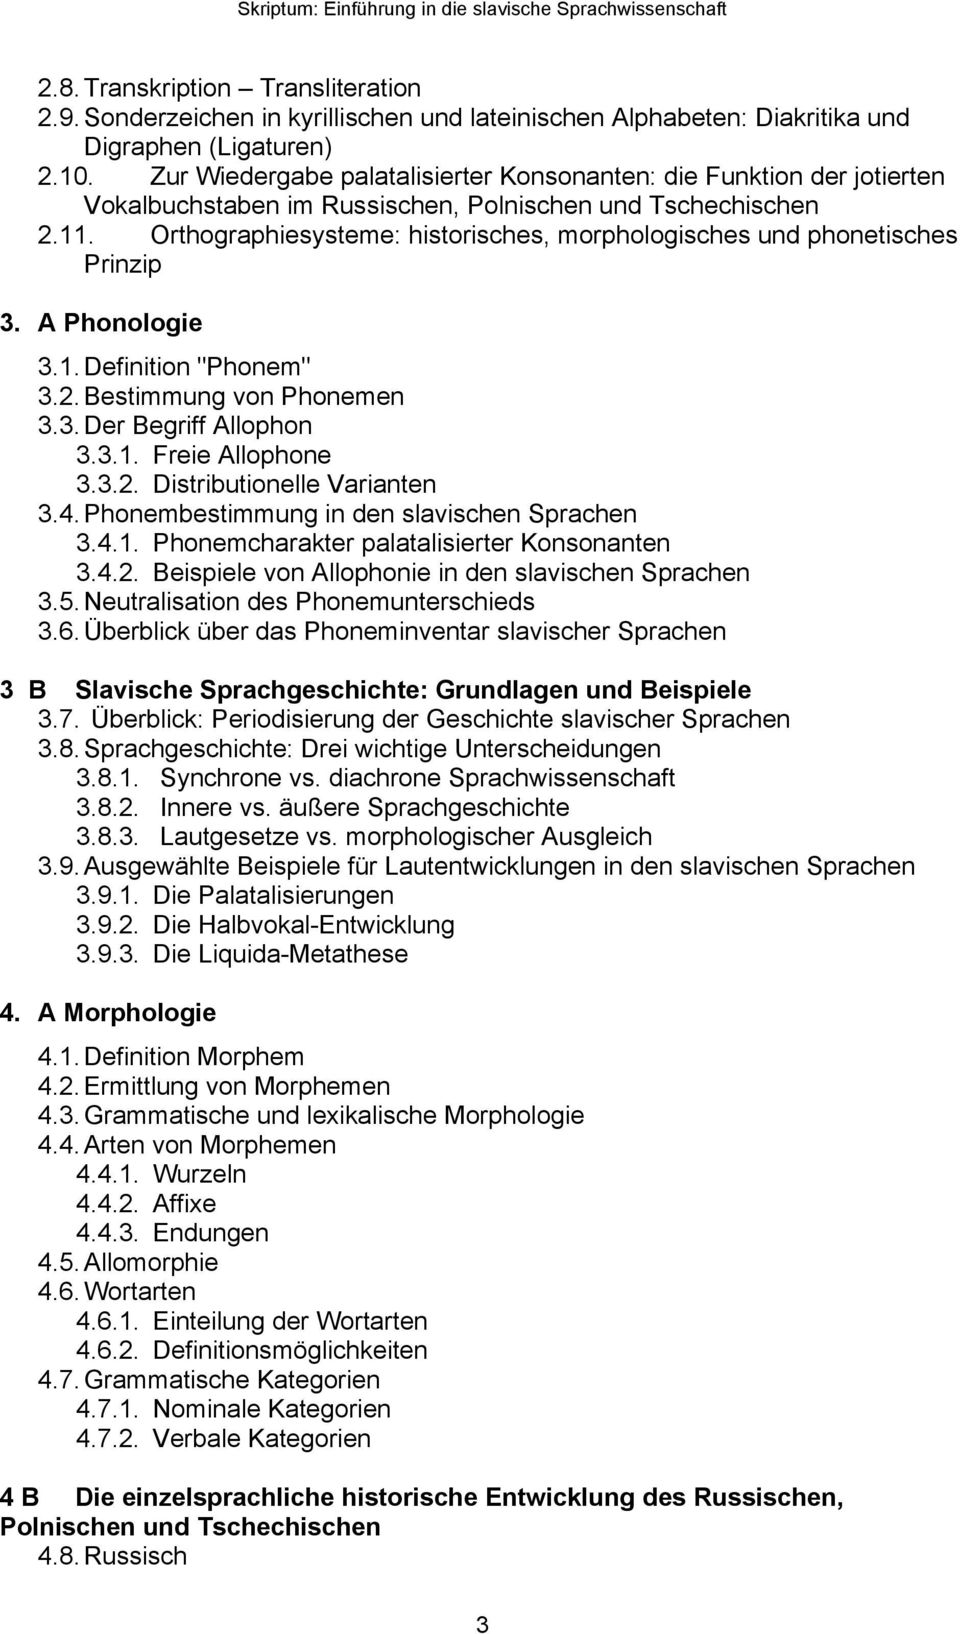 "Orthographiesysteme: historisches, morphologisches und phonetisches Prinzip 3. A Phonologie 3.1. Definition ""Phonem"" 3.2. Bestimmung von Phonemen 3.3. Der Begriff Allophon 3.3.1. Freie Allophone 3.3.2. Distributionelle Varianten 3."